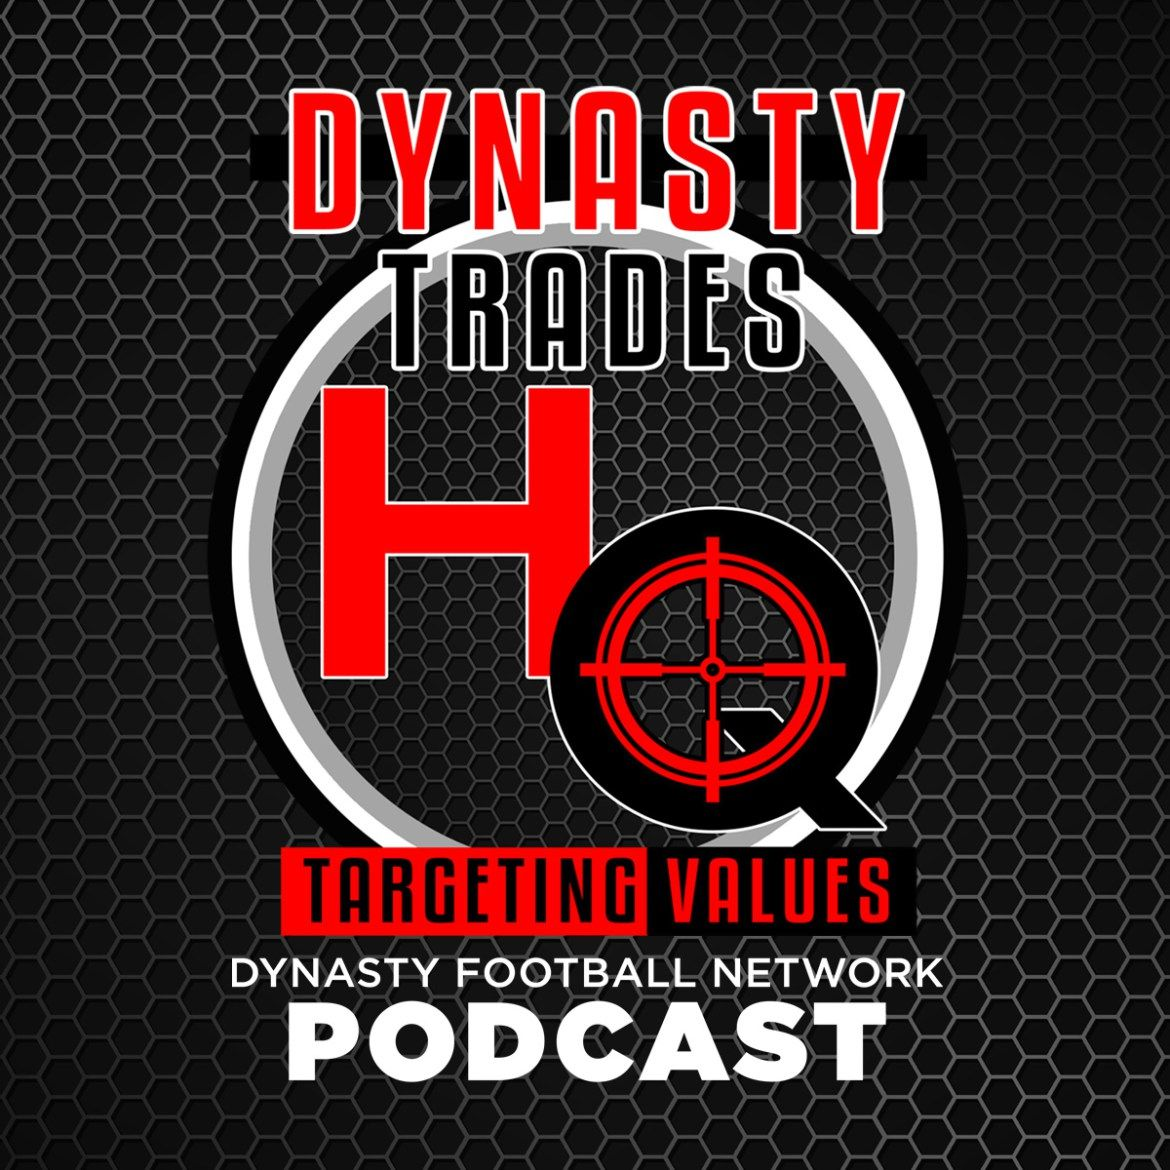 Dynastytradeshq Podcast Ep 9 Air Quotes Coaching Changes